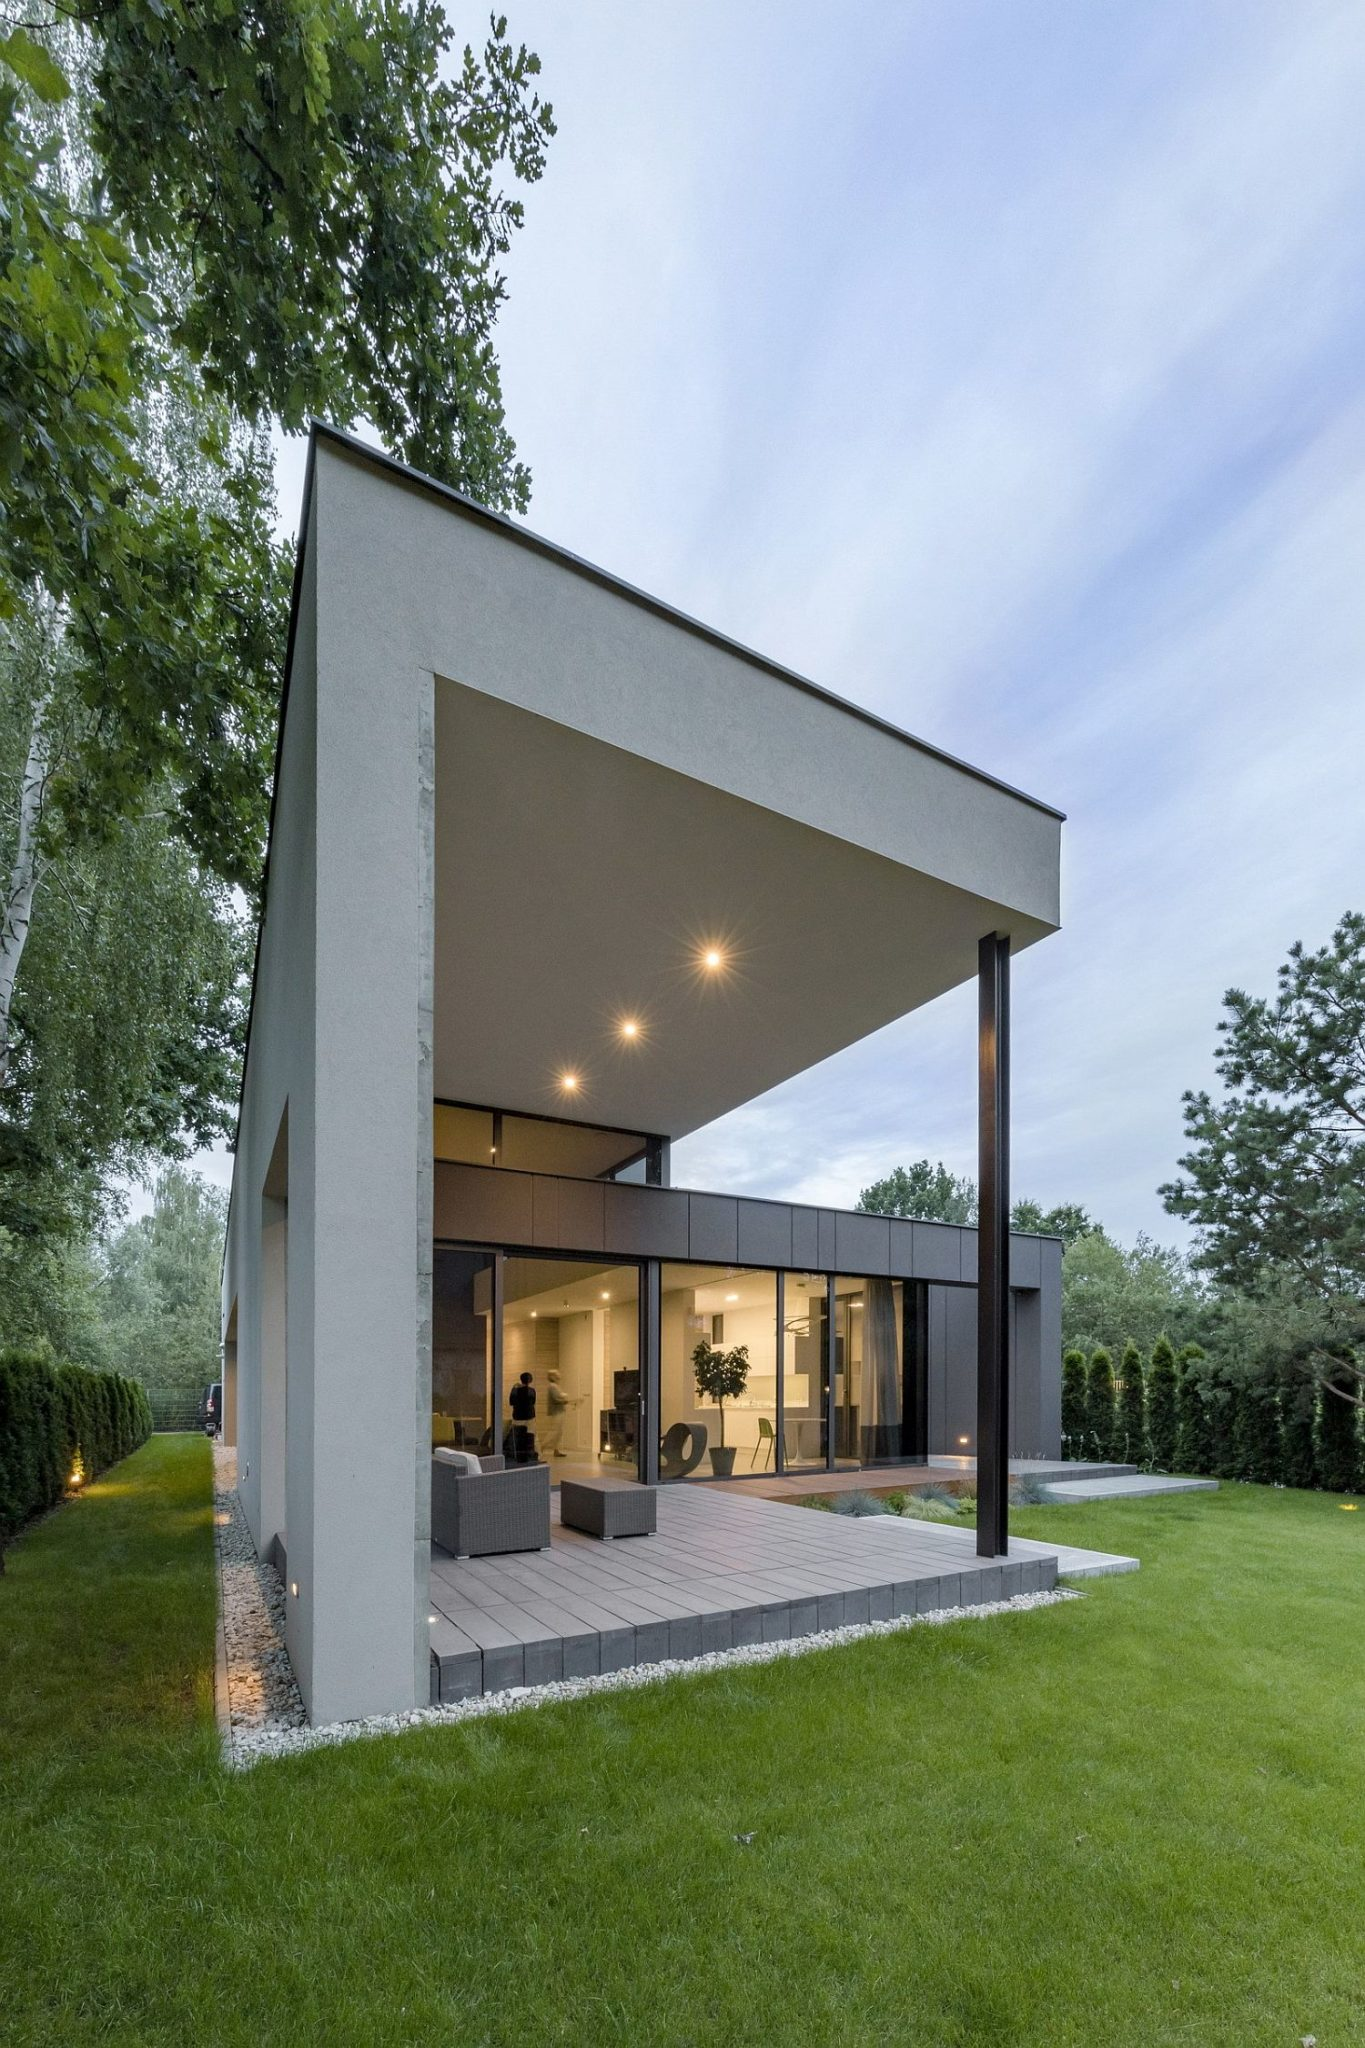 Covered-deck-with-outdoor-seating-flows-into-the-spacious-garden